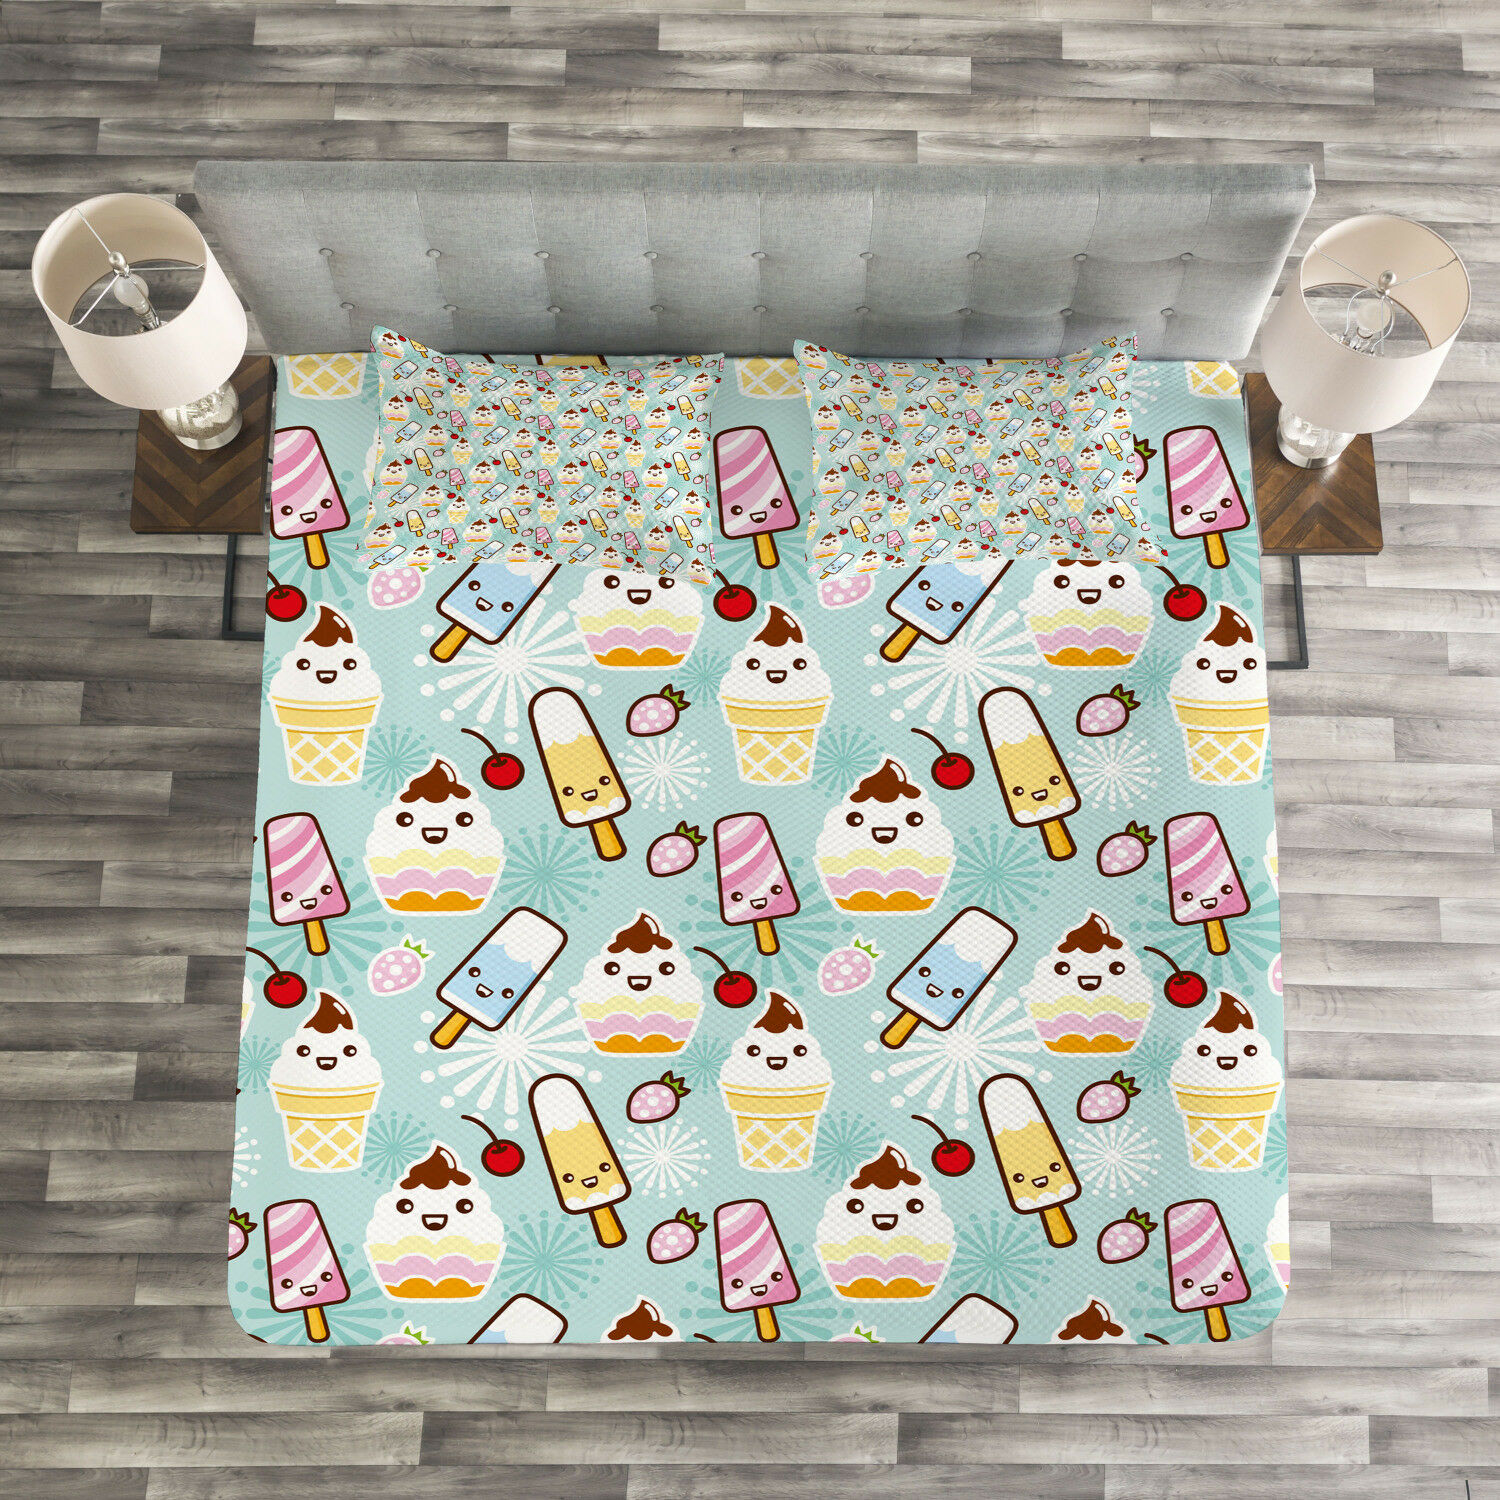 Ice Cream Quilted Bedspread & Pillow Shams Set, Cupcake Faces Print